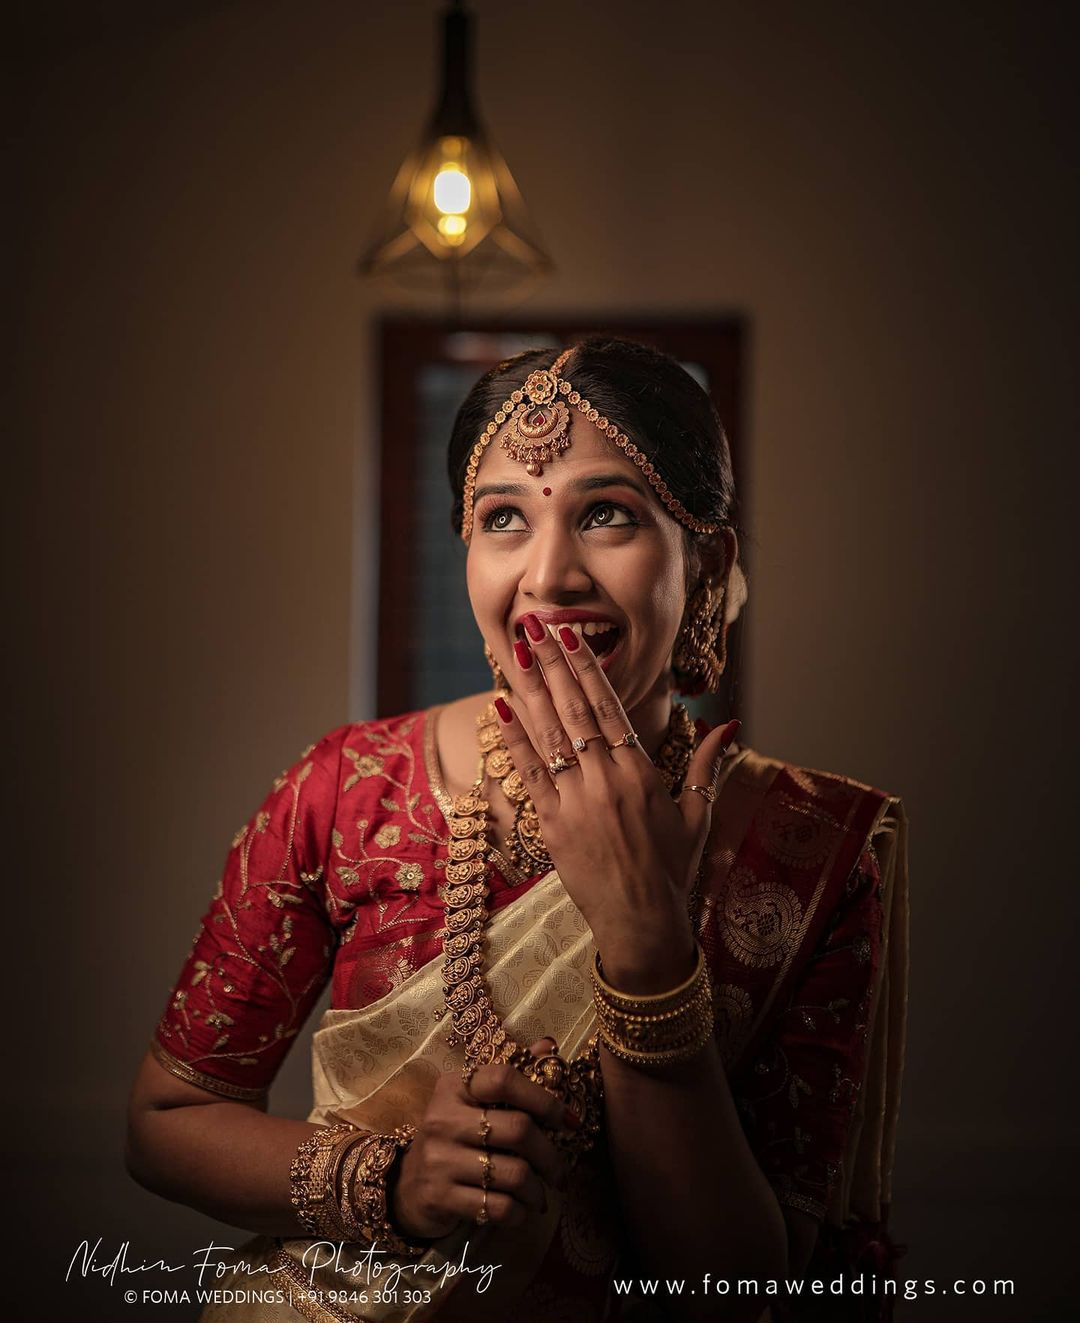 21 wedding photography funny bride by nidhin foma